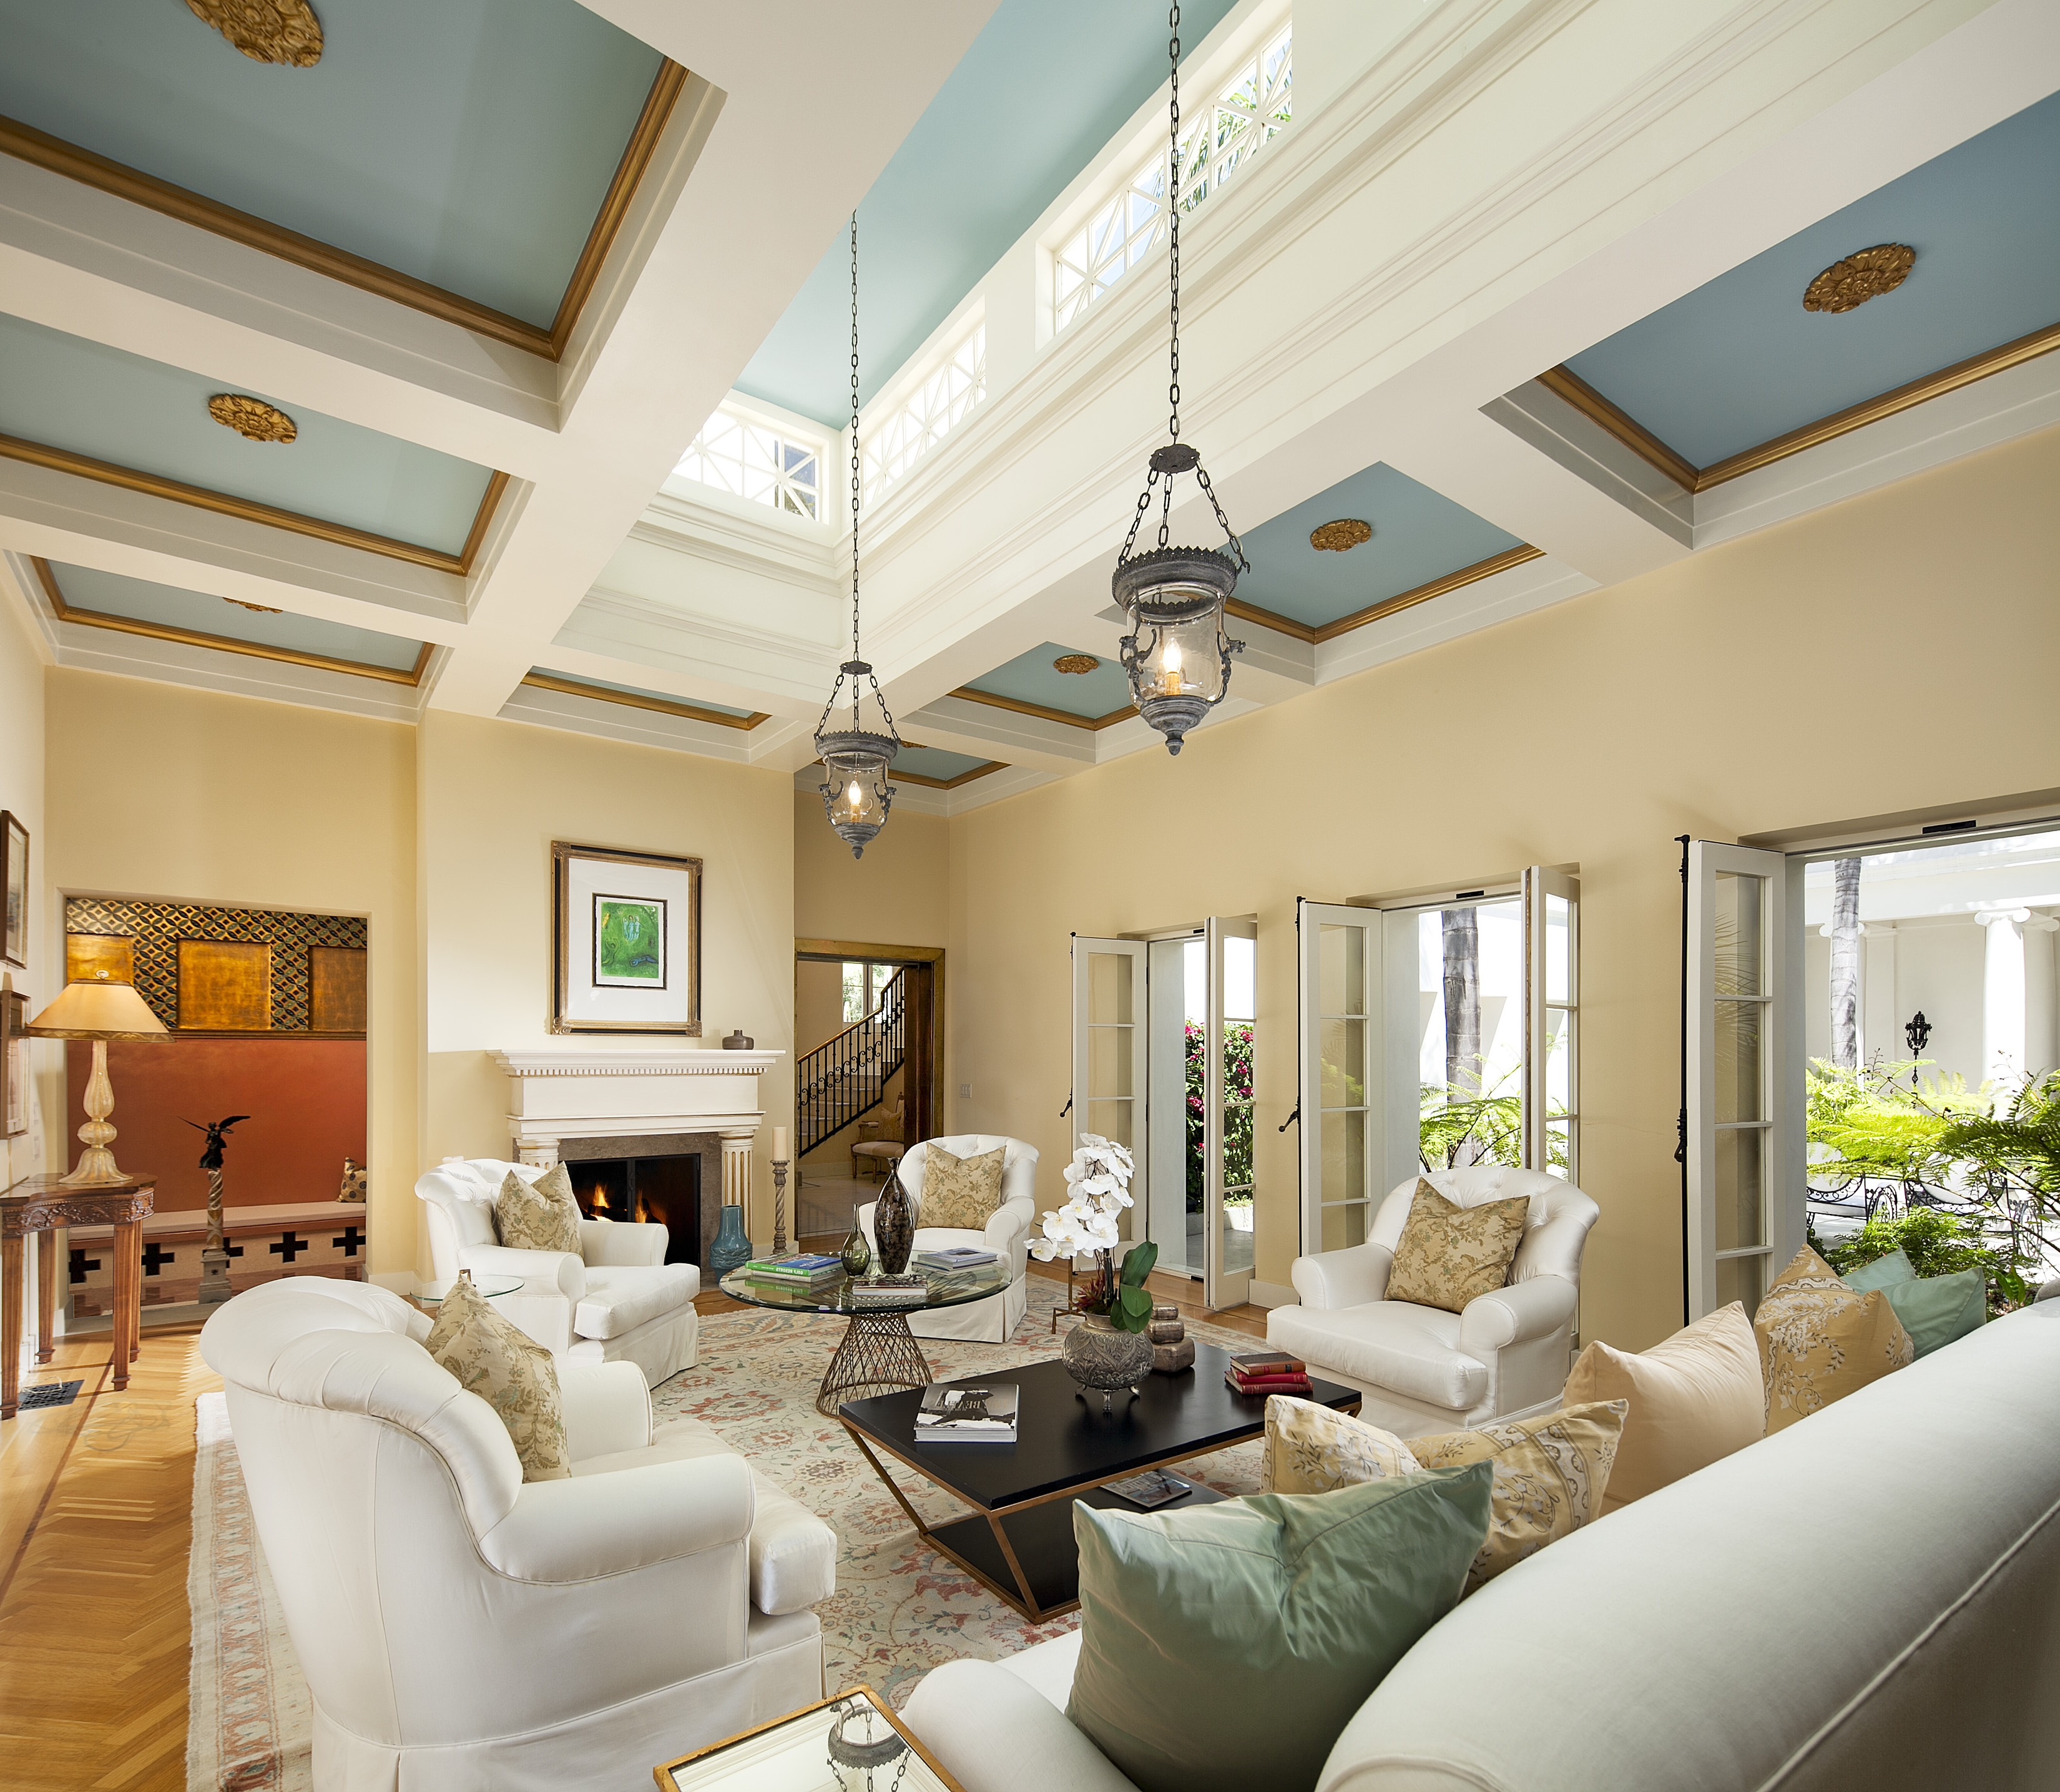 Comfy Mediterranean Inspired Living Room Interior (Image 2 of 25)